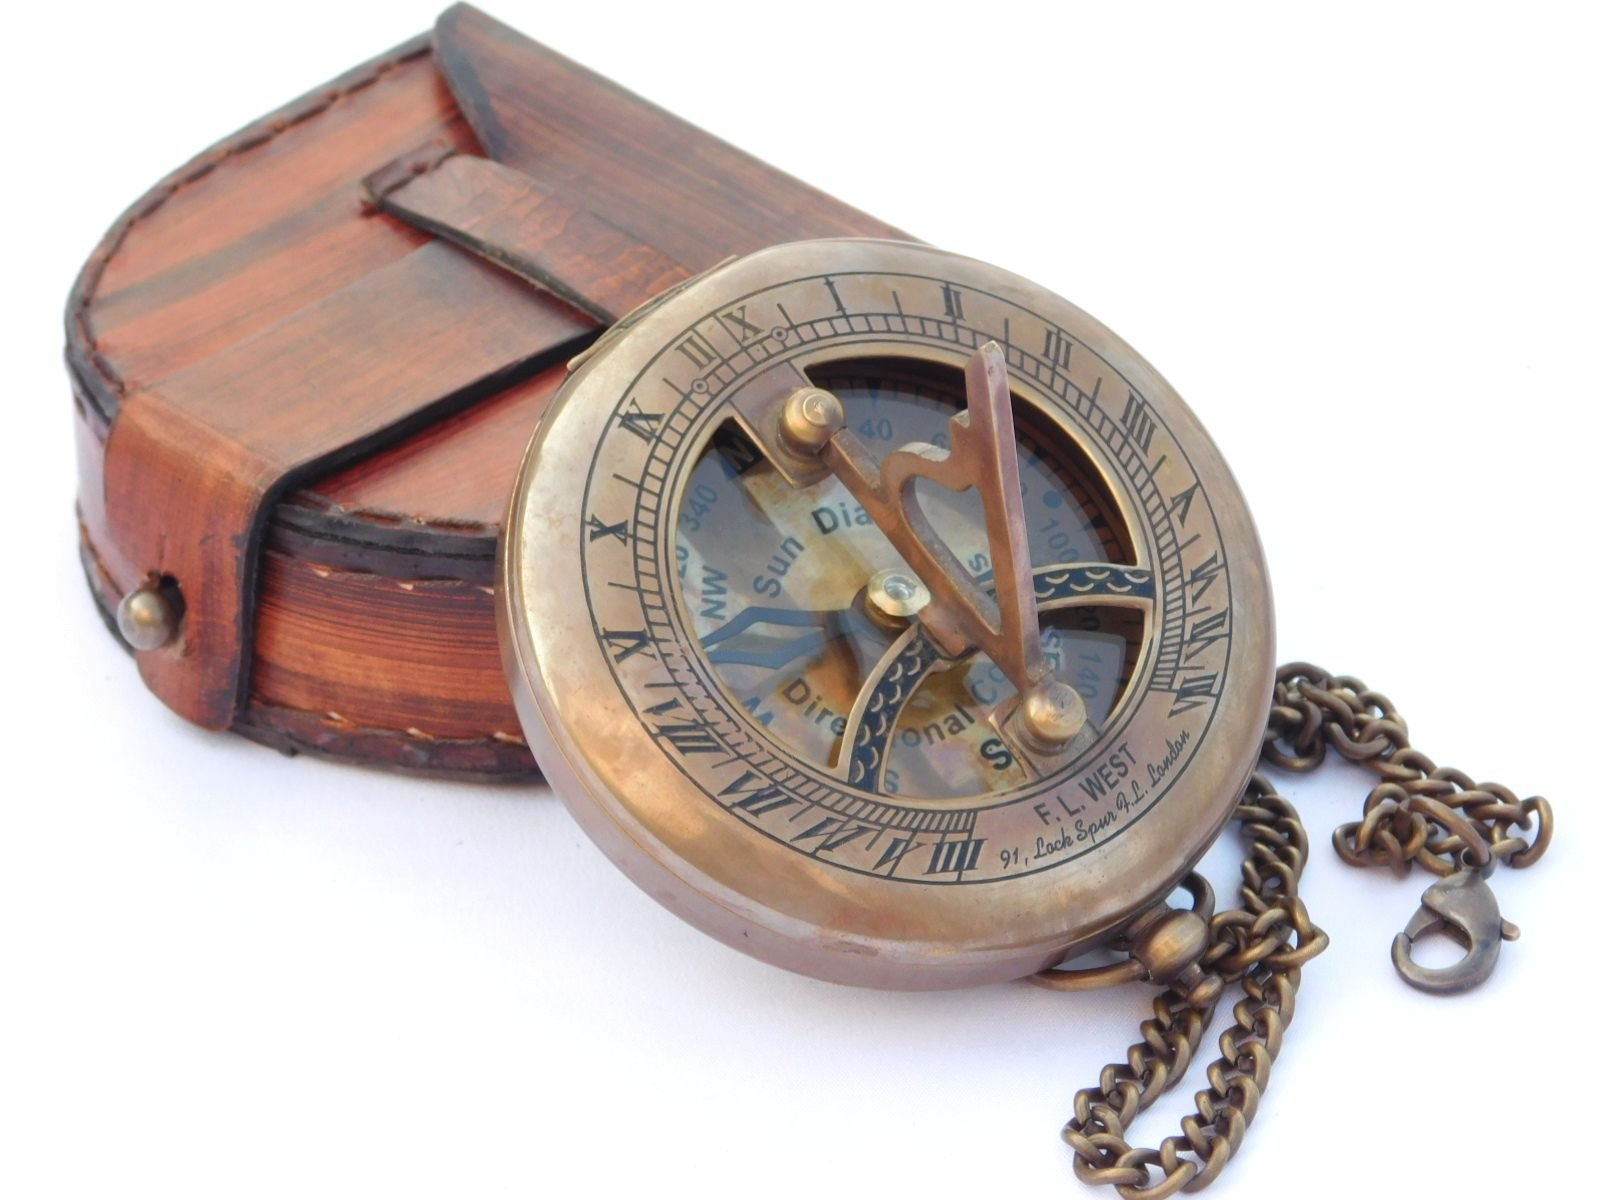 NEOVIVID Brass Sundial Compass with Leather Case and Chain - Push Open Compass - Steampunk Accessory - Antiquated Finish - Beautiful Handmade Gift -Sundial Clock by NEOVIVID